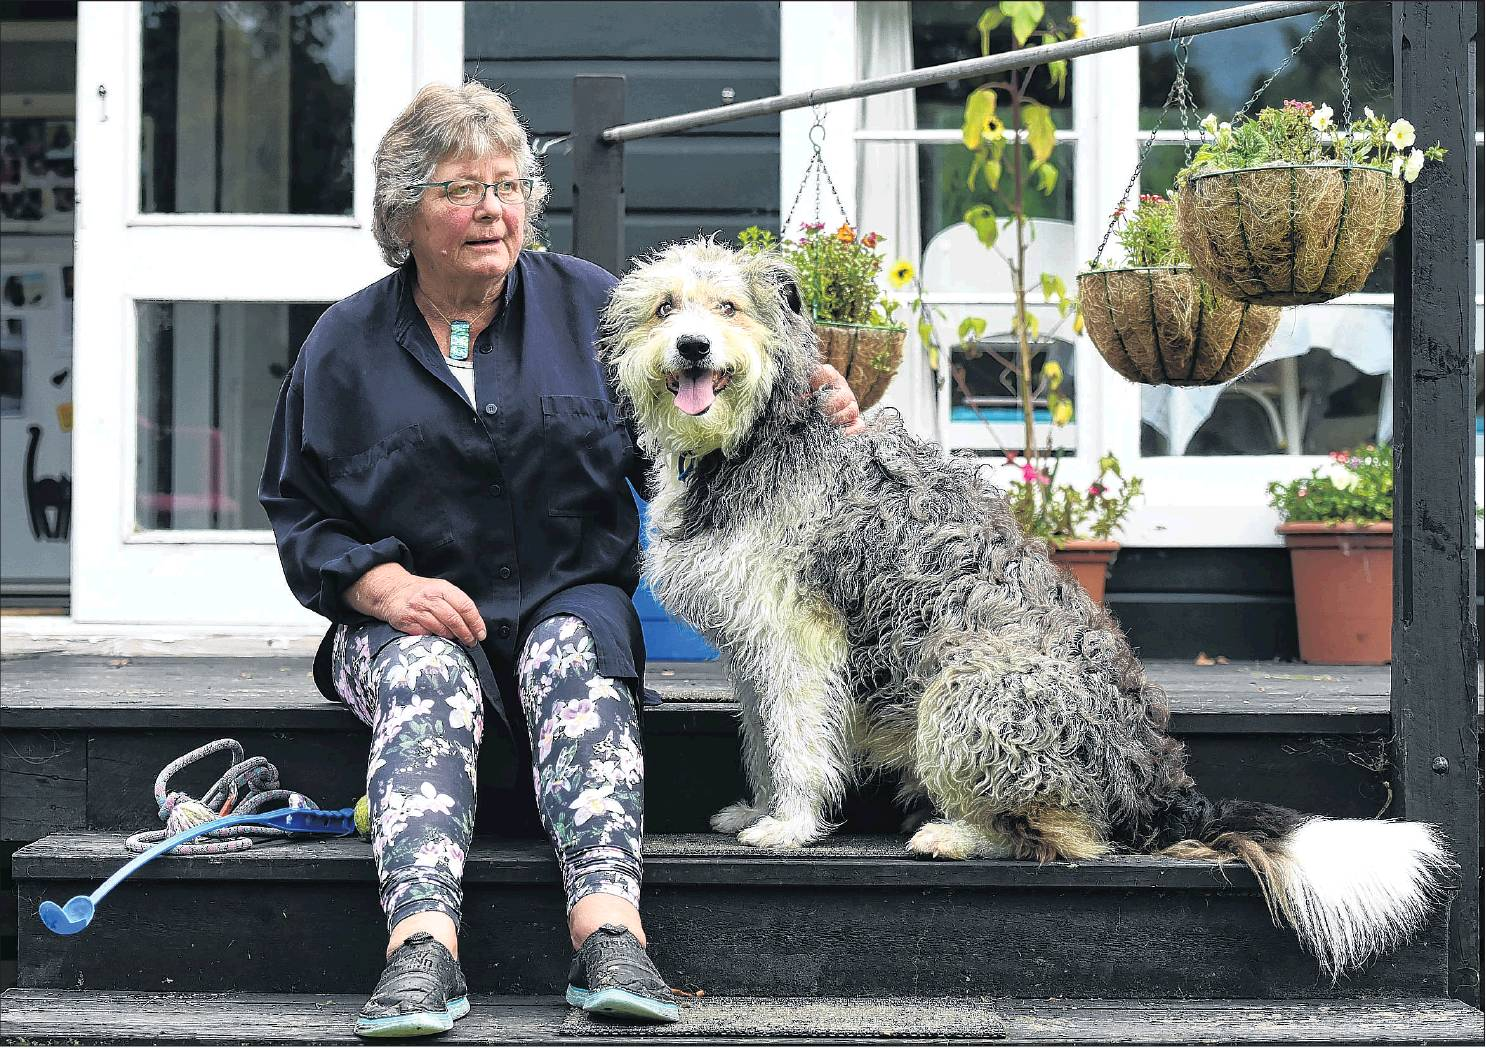 Cate Morrison with her dog Golly in Waitati yesterday. PHOTO: GREGOR RICHARDSON